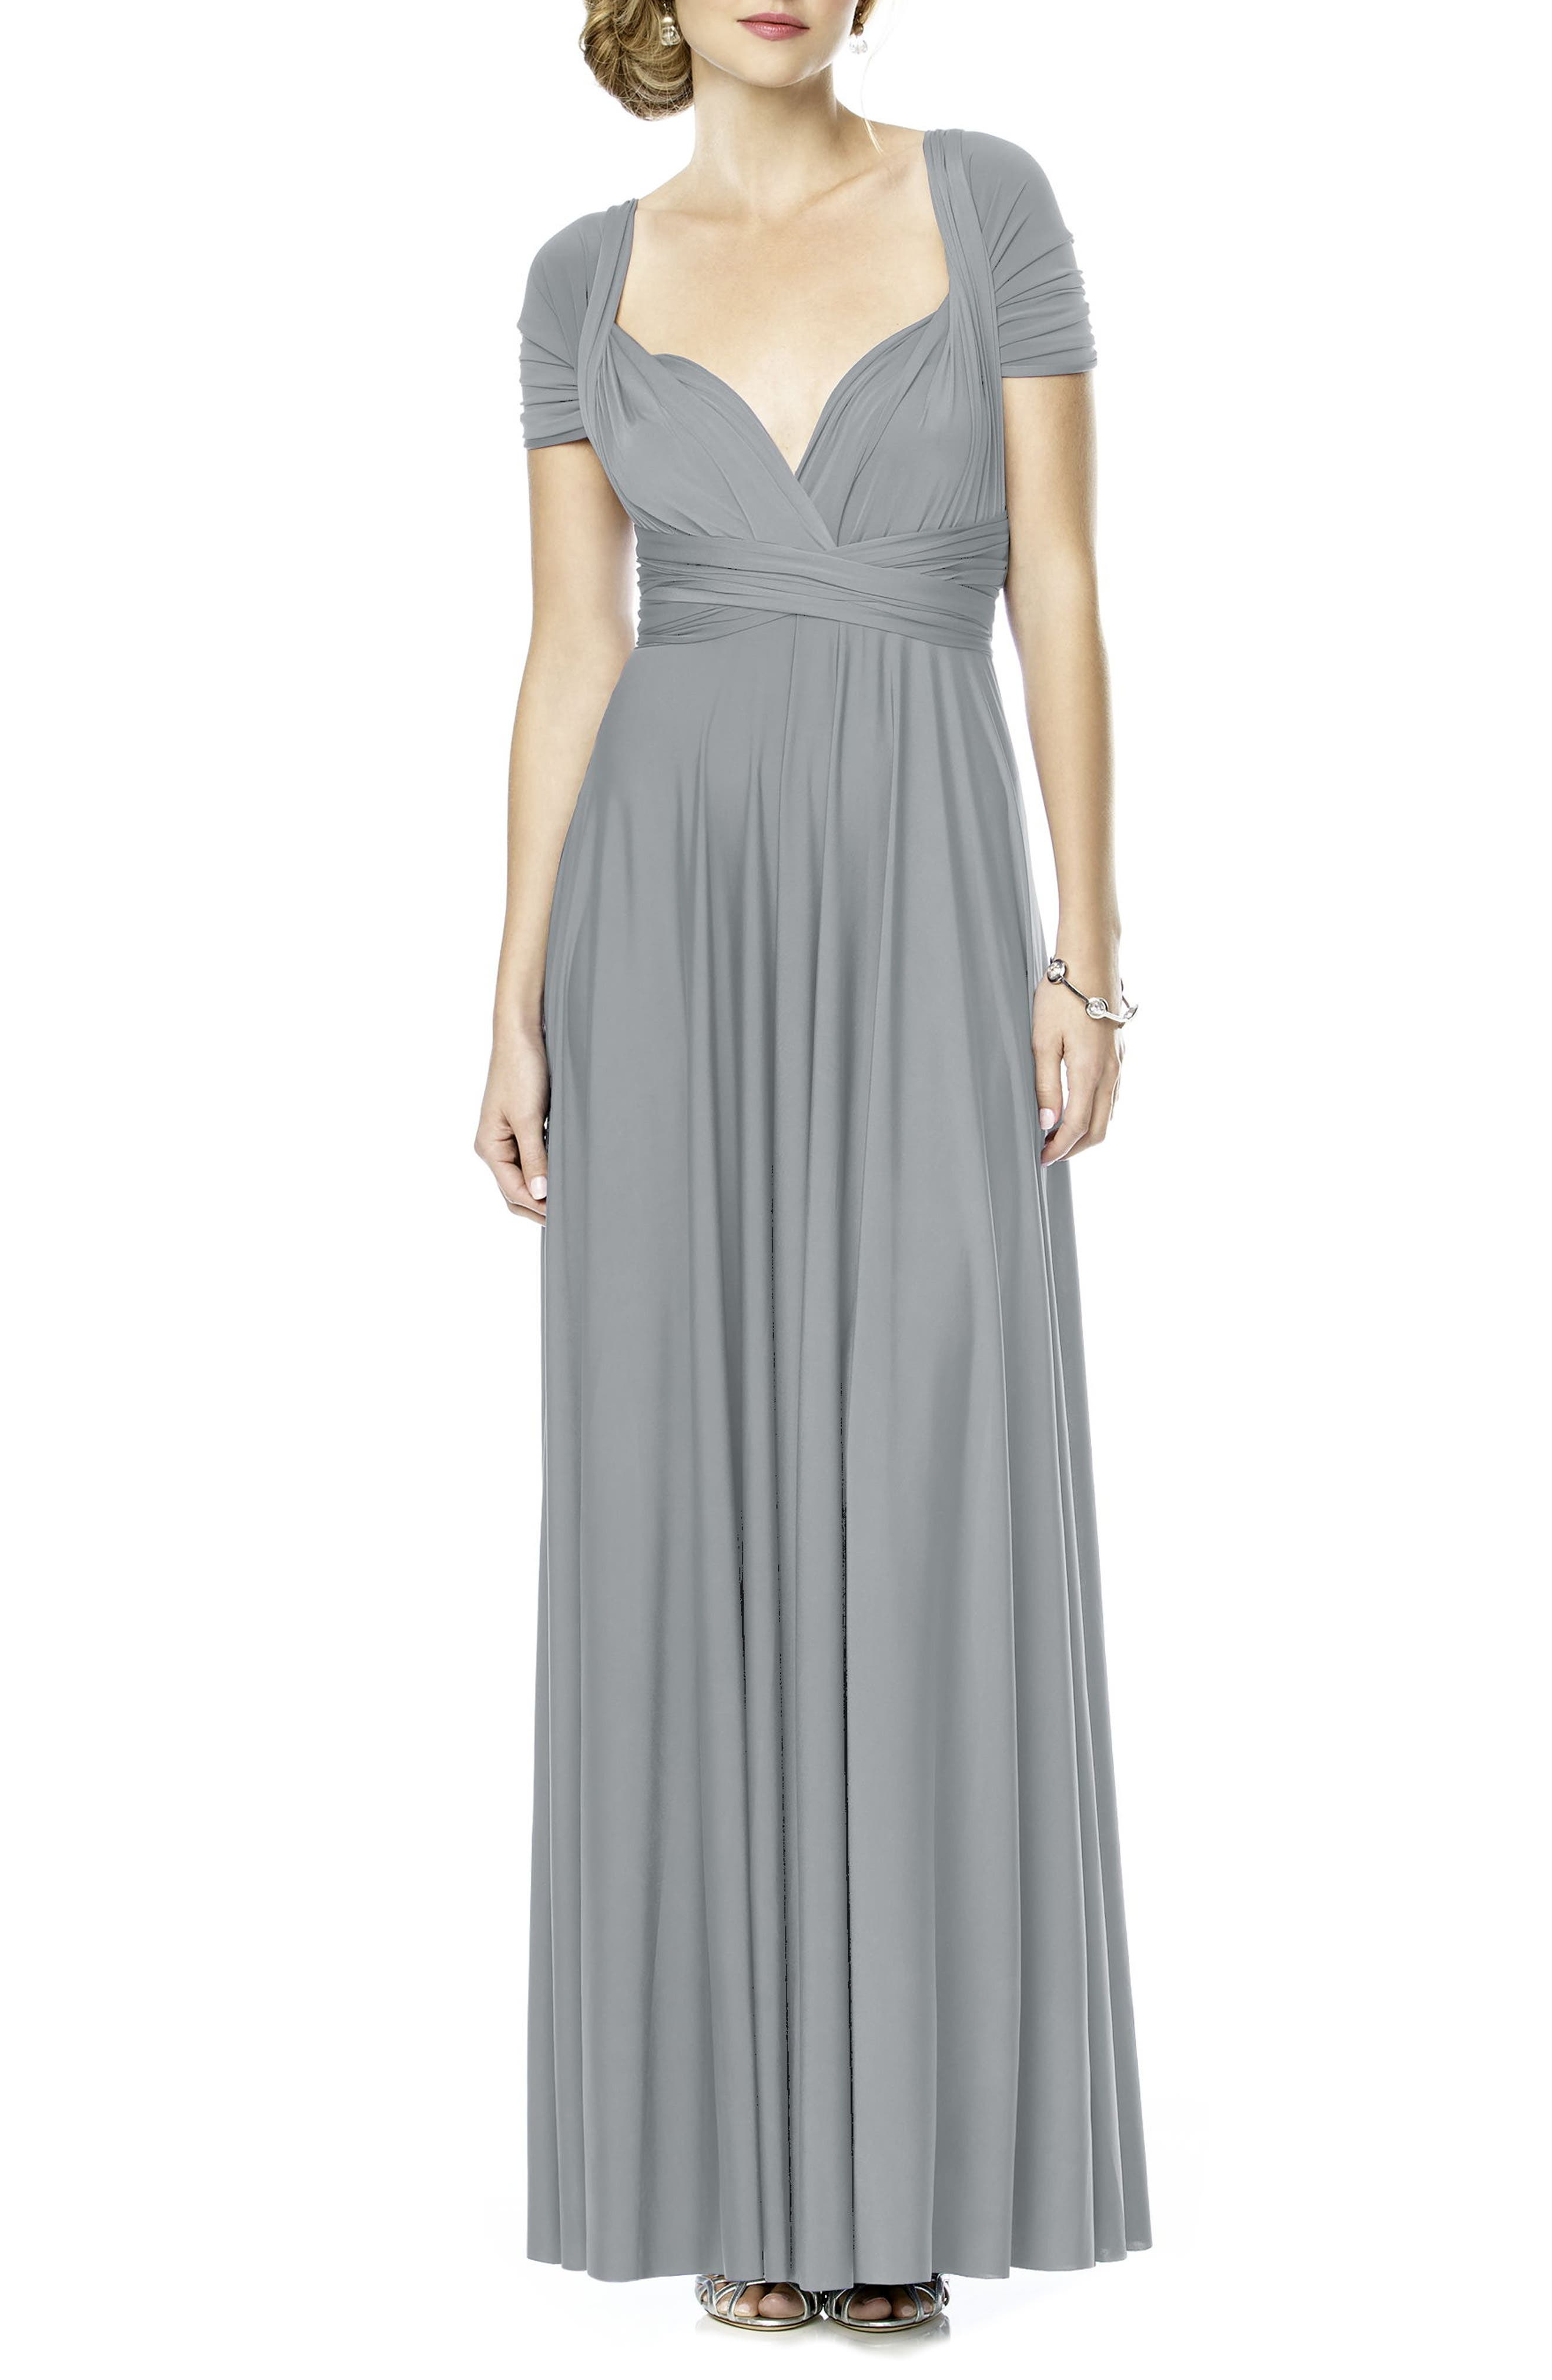 DESSY COLLECTION Convertible Wrap Tie Surplice Jersey Gown, Main, color, 033